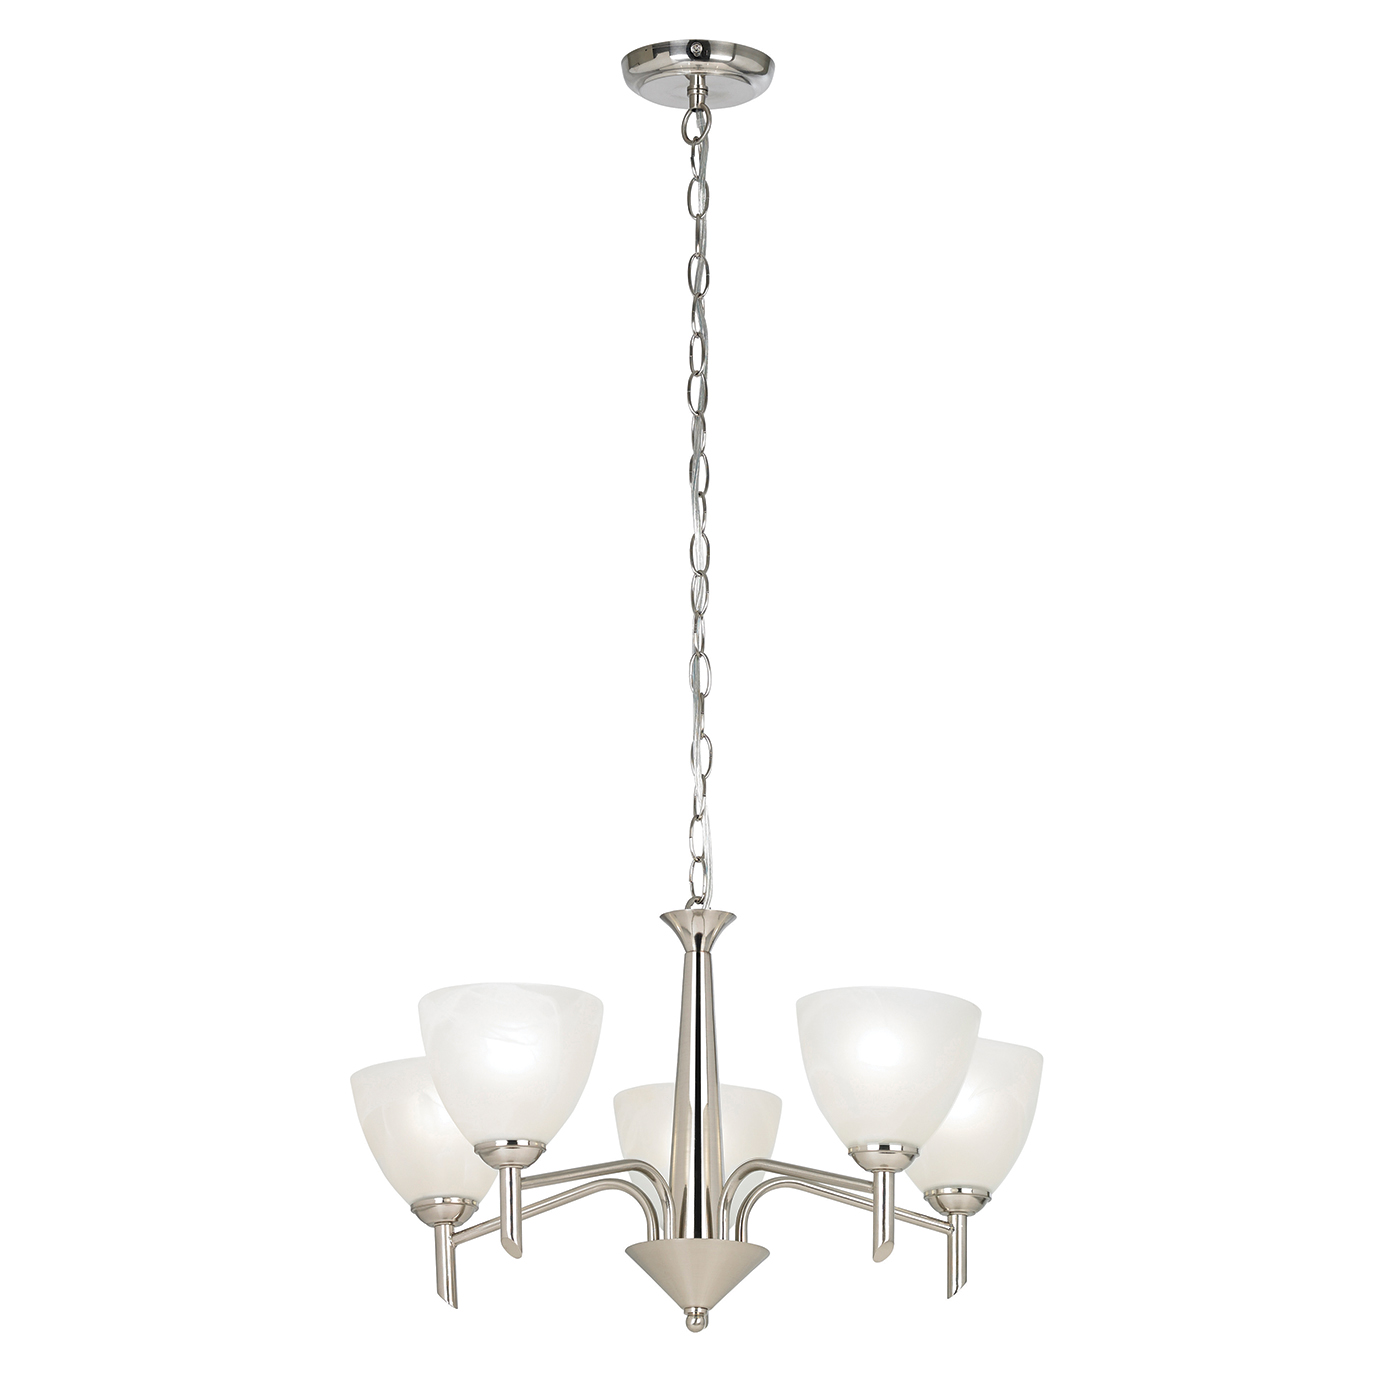 Endon Neeson pendant 5x 40W Satin nickel effect plate & alabaster glass Thumbnail 1